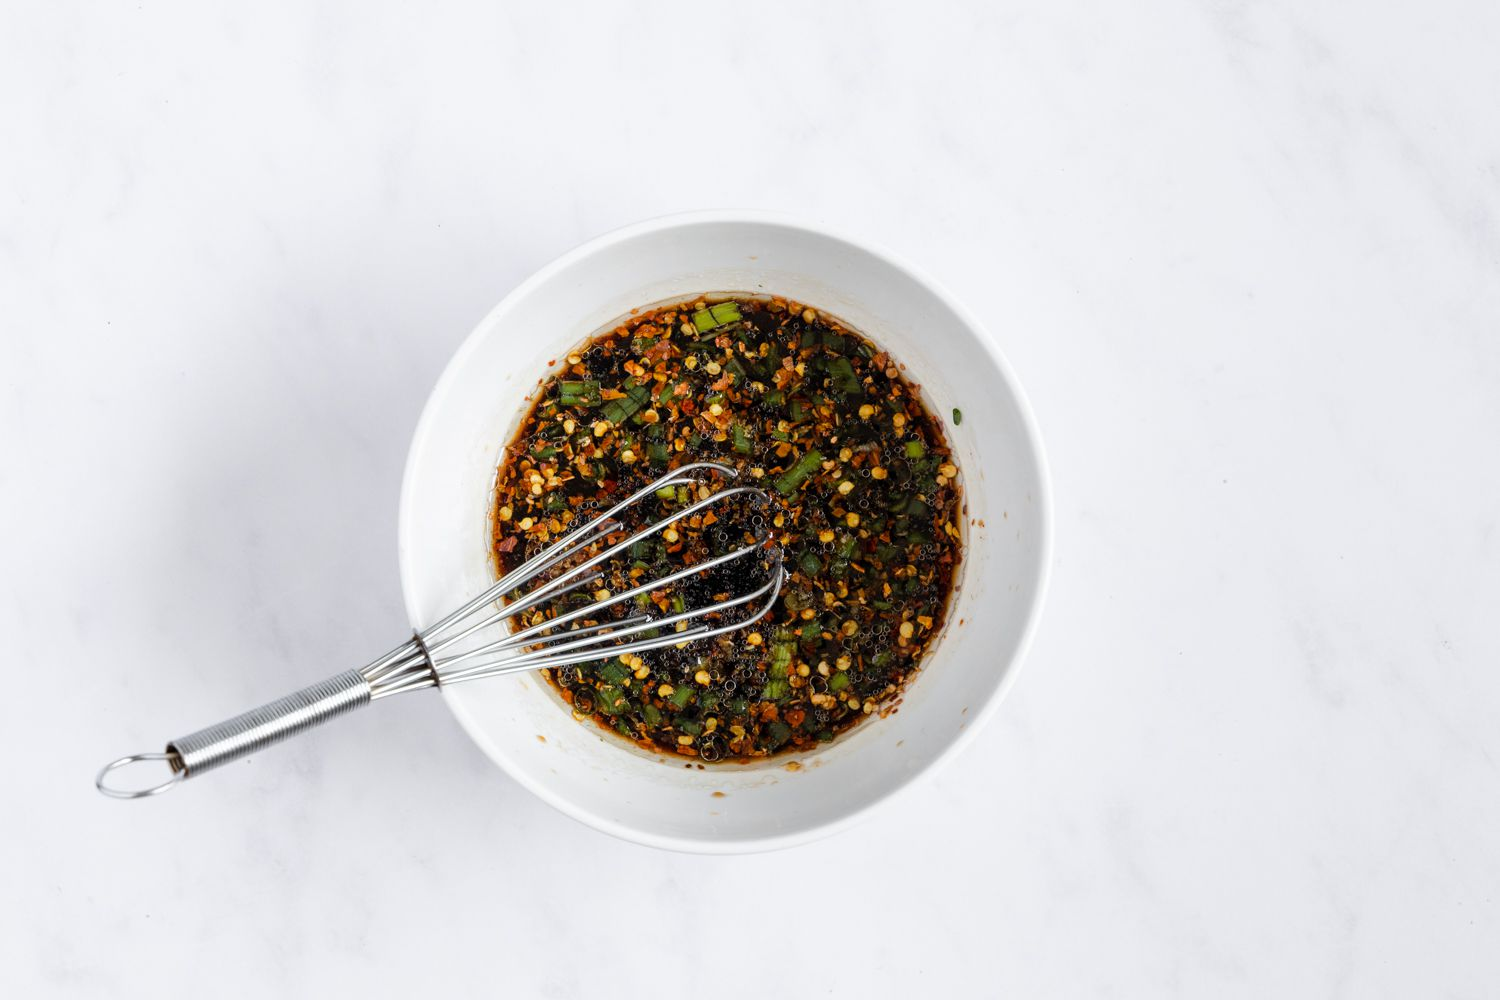 Whisk in the ginger, garlic, scallions, brown sugar, and crushed red pepper into the soy sauce mixture